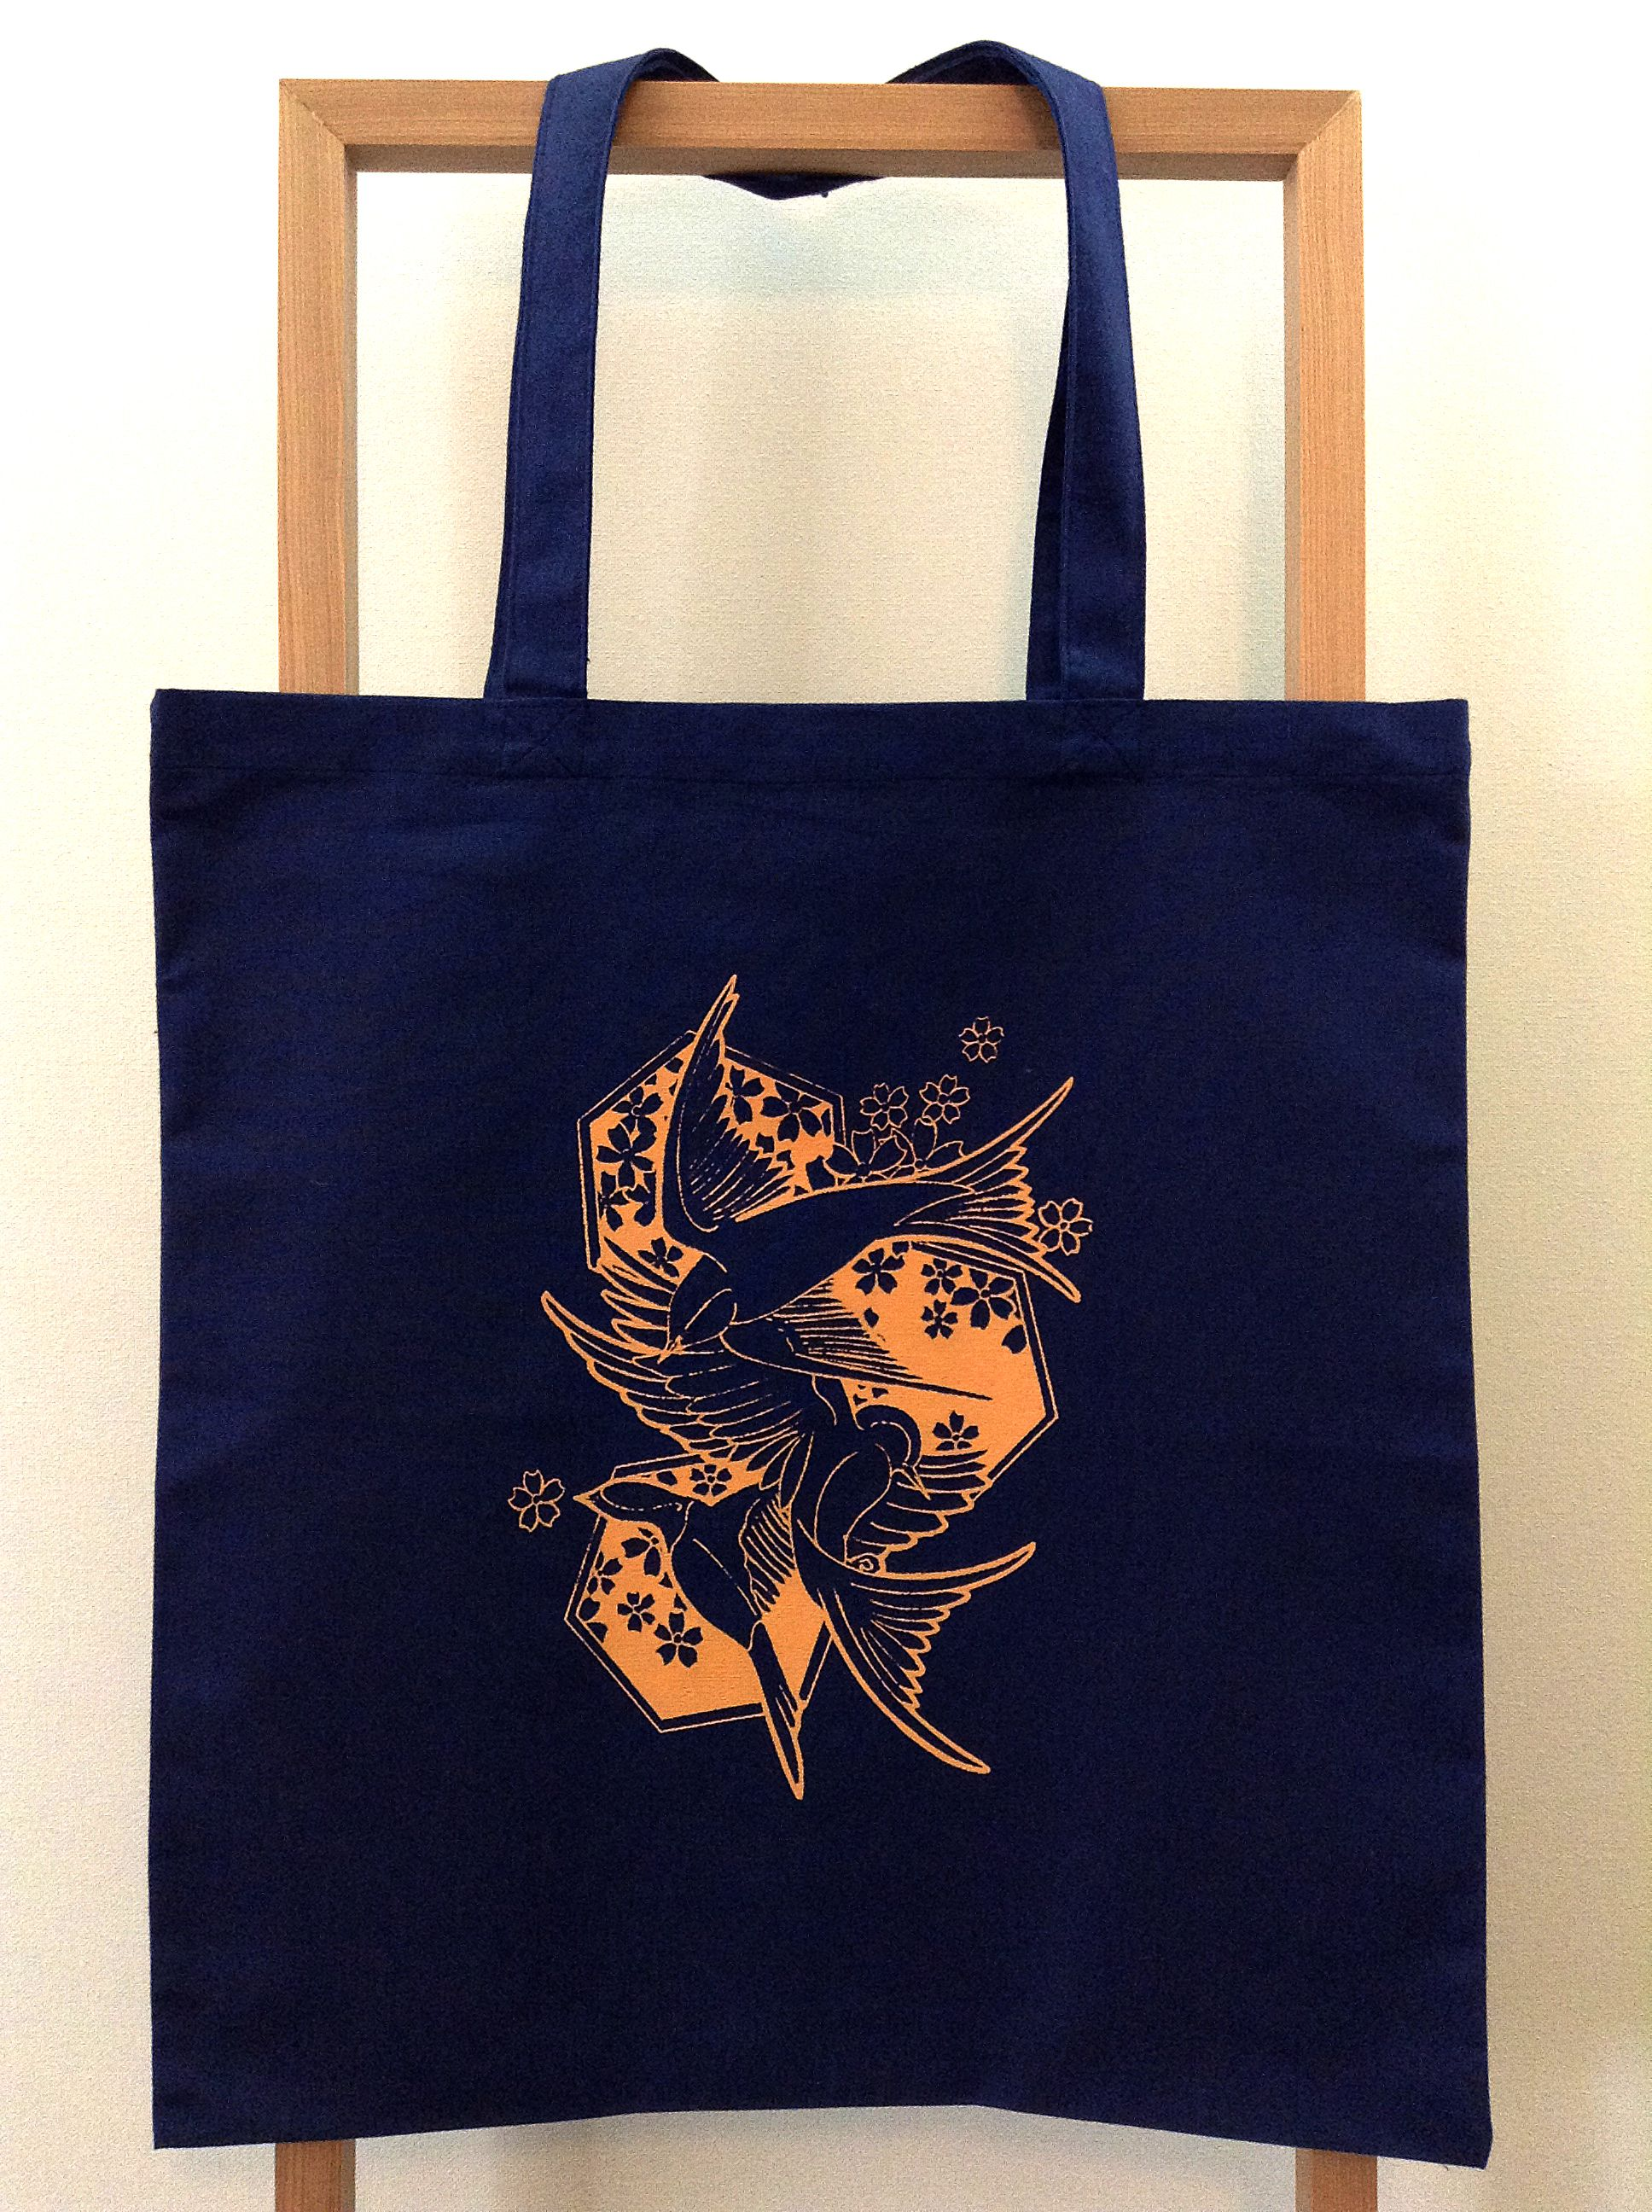 SWALLOWS IN FLIGHT  NAVY - Tote  100% cotton canvas  - 15 x 16  $10.00 + $.5.00 Shipping